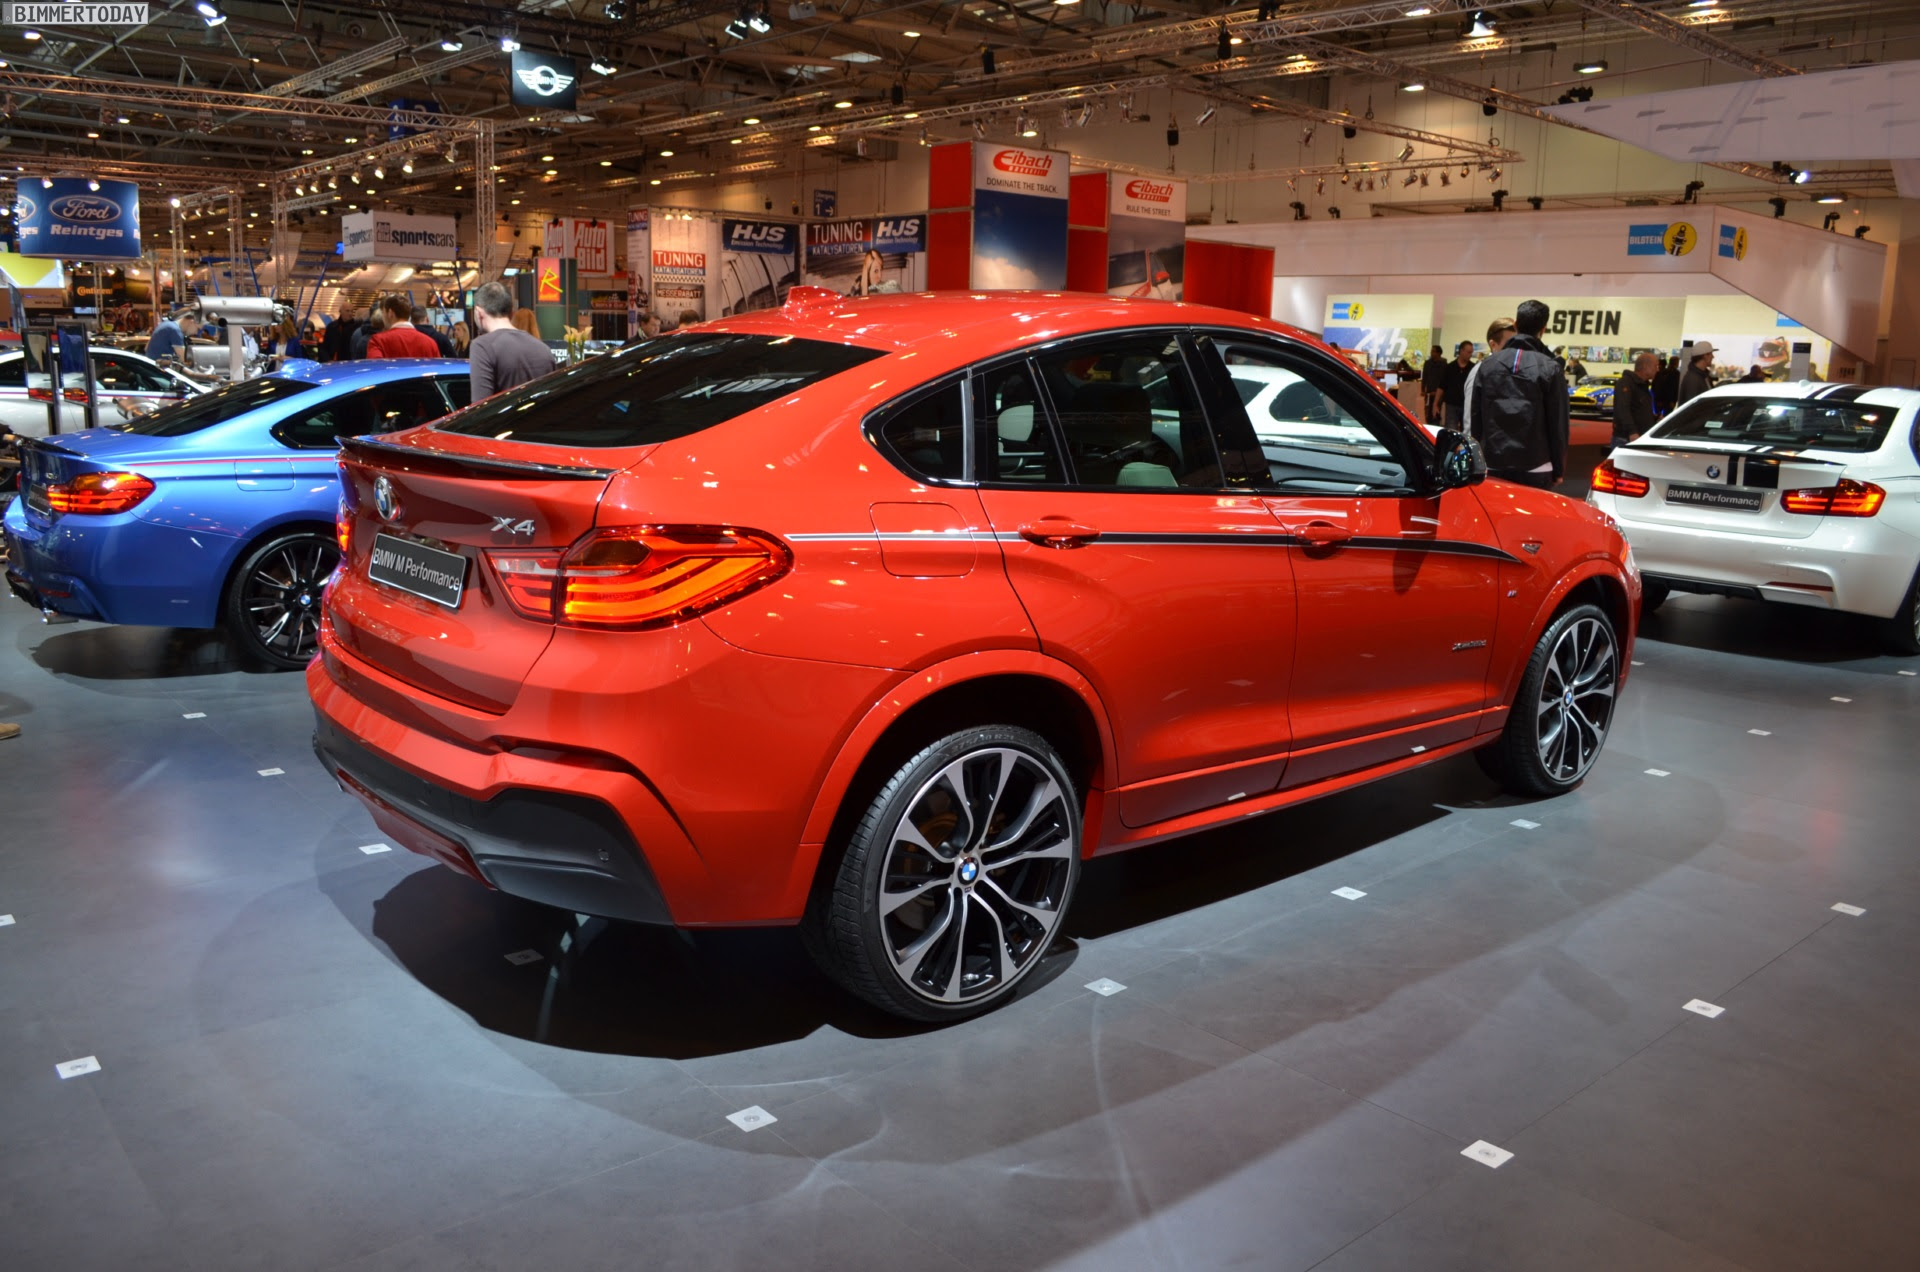 BMW M Performance tuning for the BMW X4 at 2014 Essen Motor Show